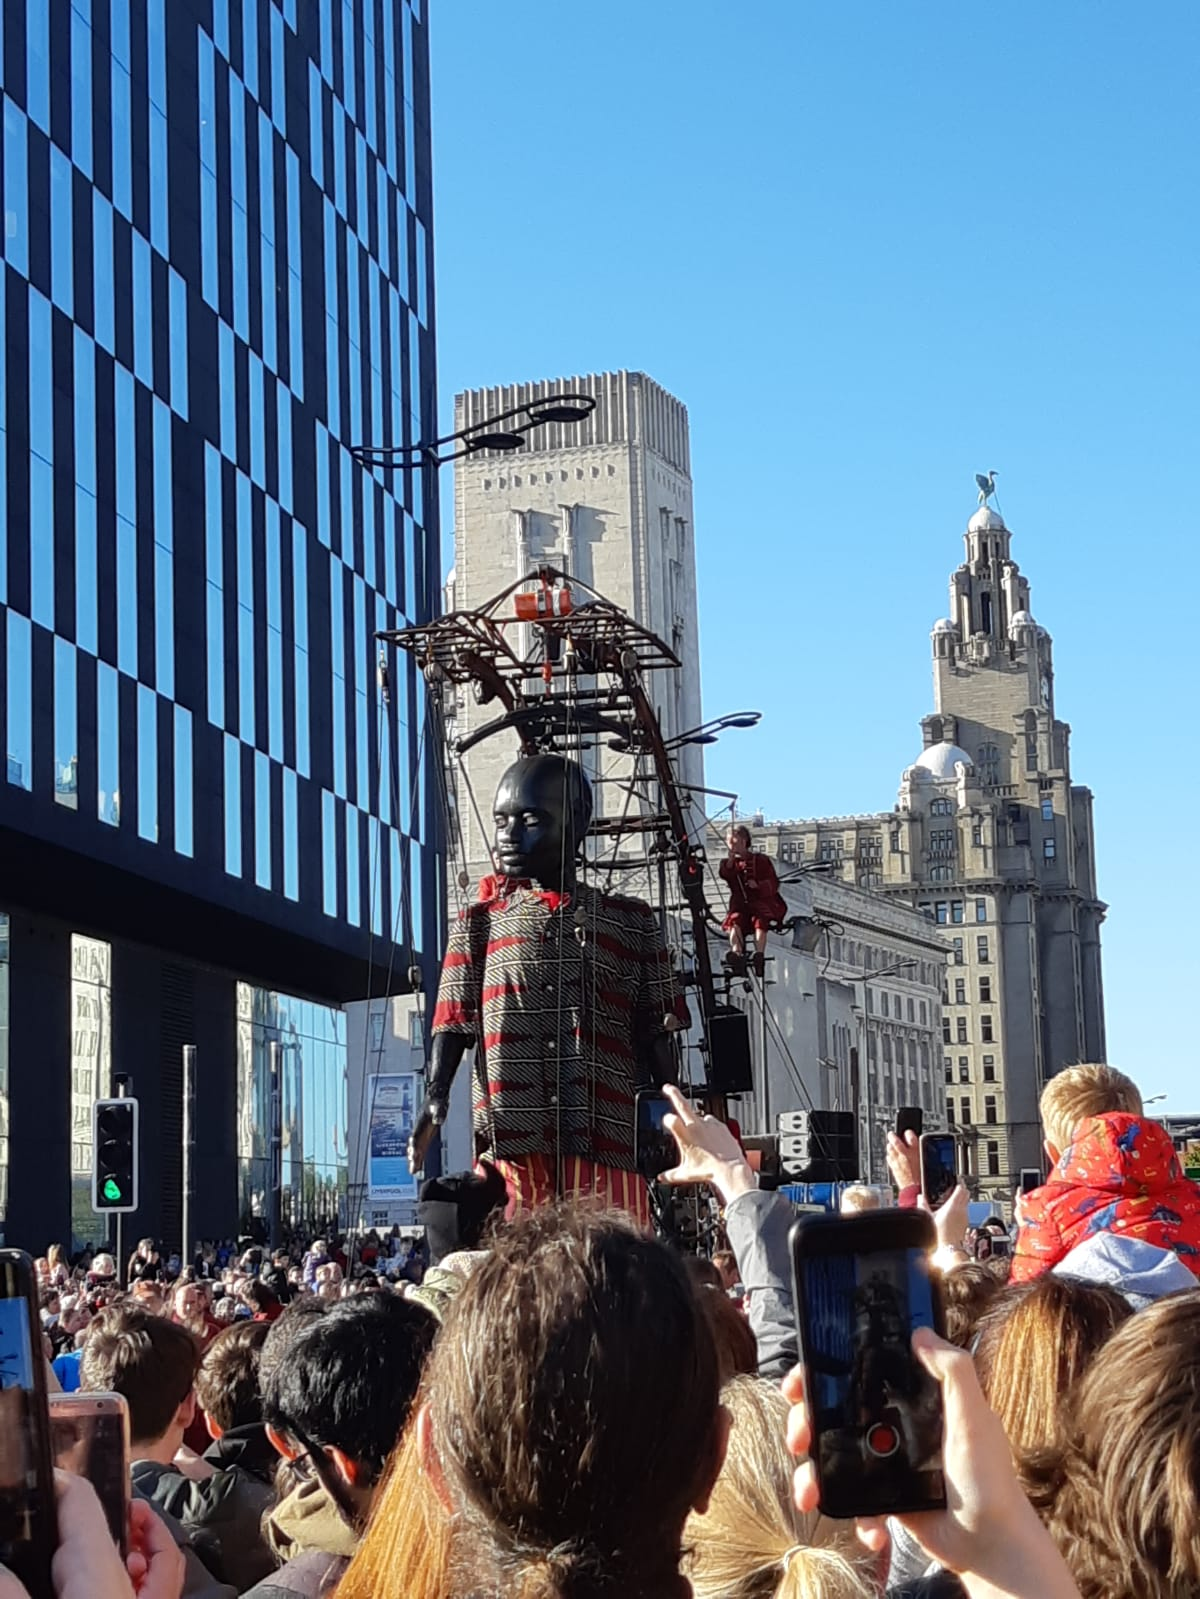 The final Curtain call of the Liverpool Giants exploring the city has come to an end - take a look at some of our favourite pictures from the Gigantic weekend! (Pun intended)